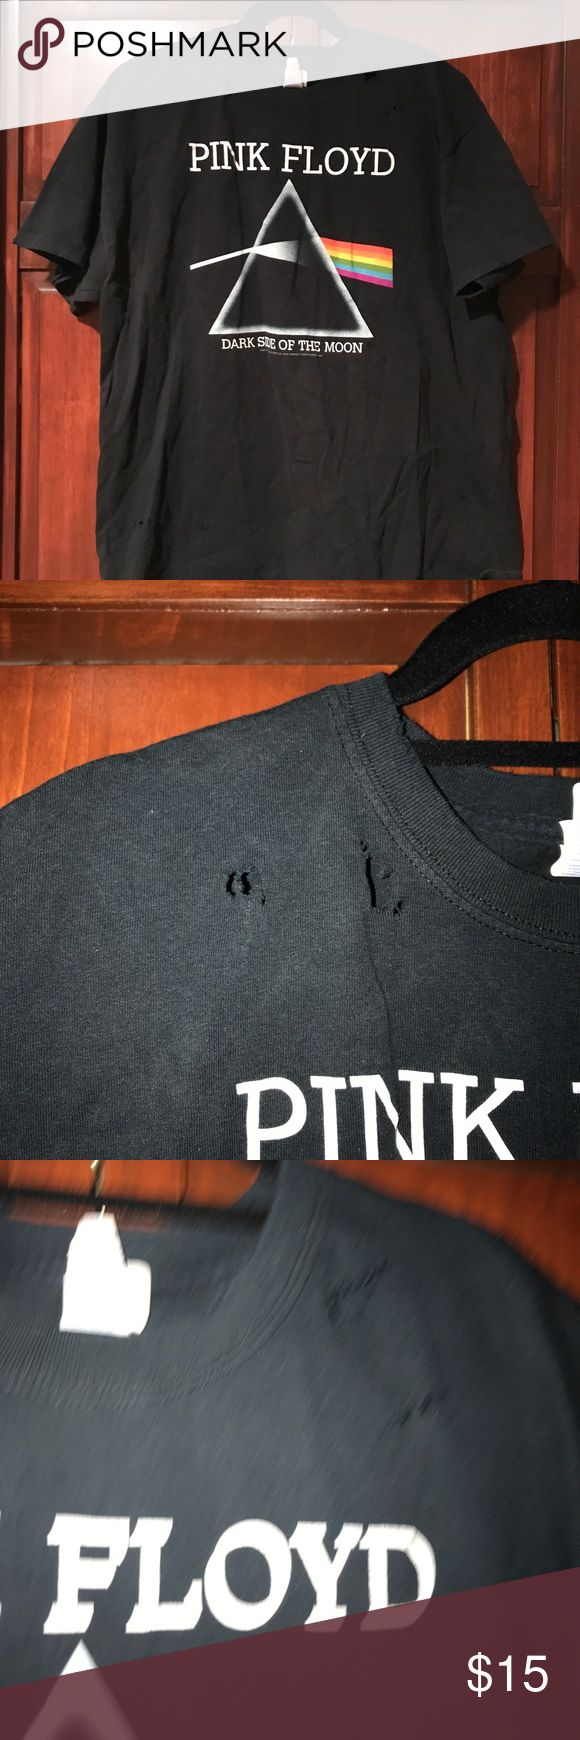 Distressed Punk Floyd shirt size XL Distressed Pink Floyd shirt, replica from concert t. Holes on front and back neckline, very rad shirt! Gildan Tops Tees - Short Sleeve